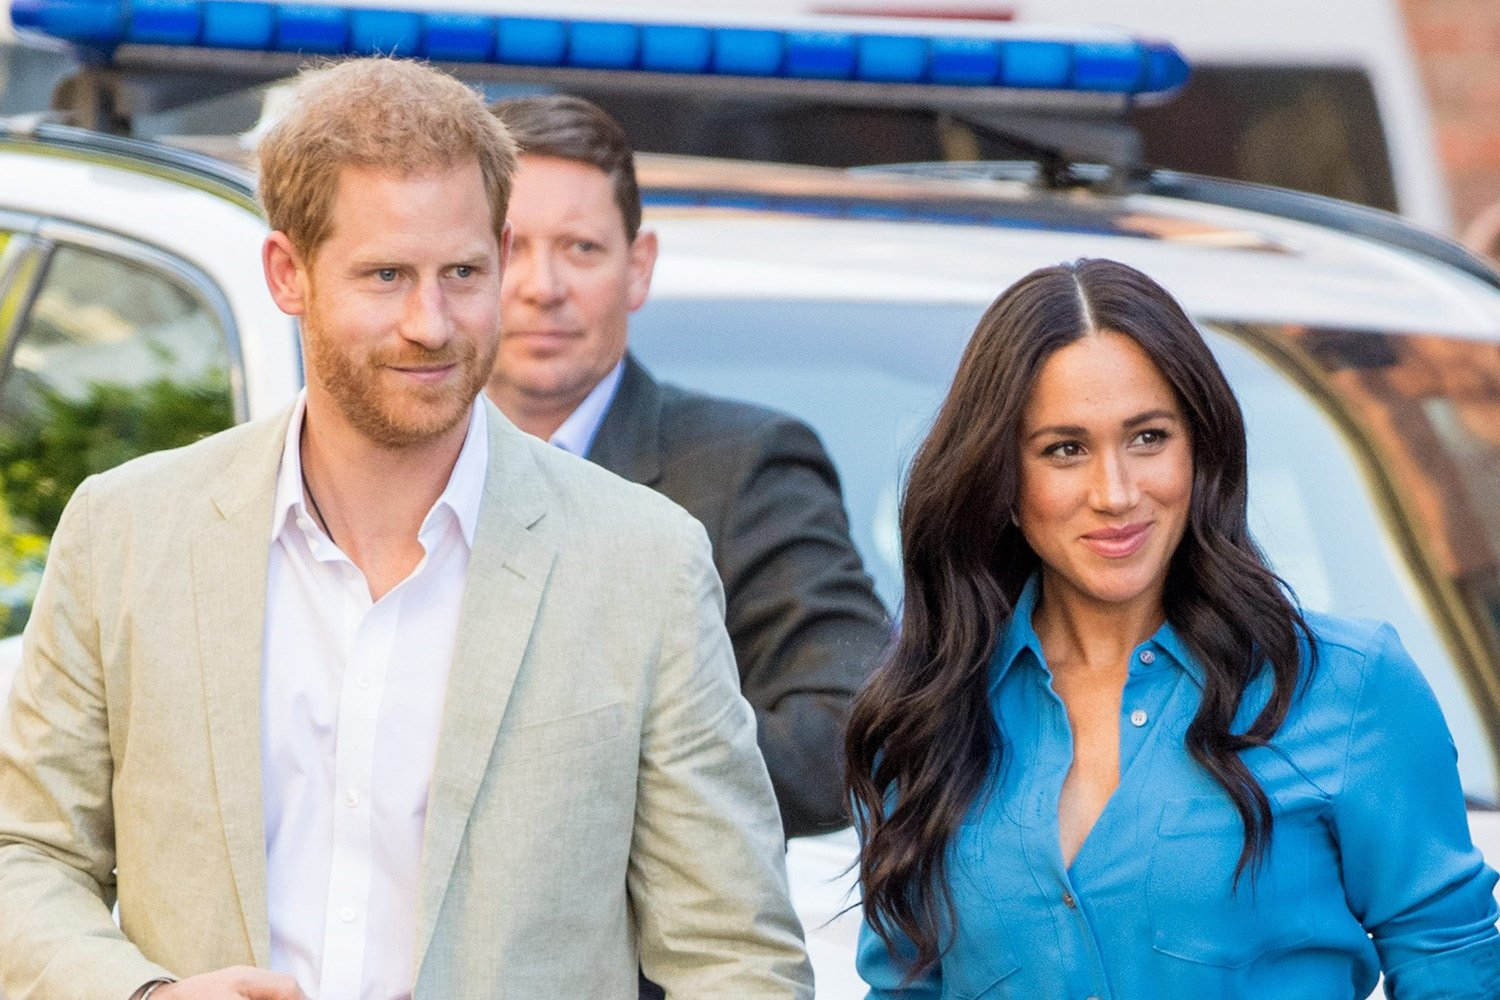 Harry and Meghan 'to celebrate Prince Philip's birthday with phone call with Archie'